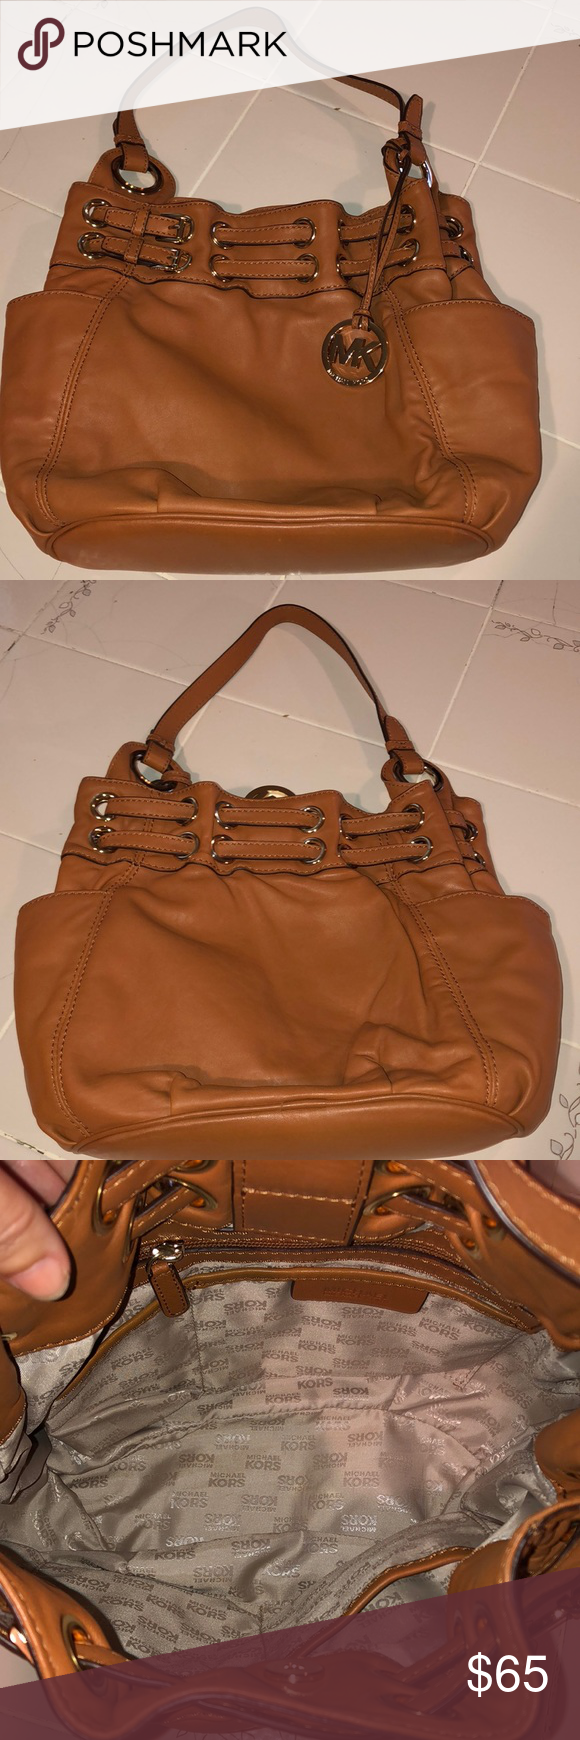 e84c680c301 Michael Kors Purse Beautiful butter soft leather Tan color with gold ...